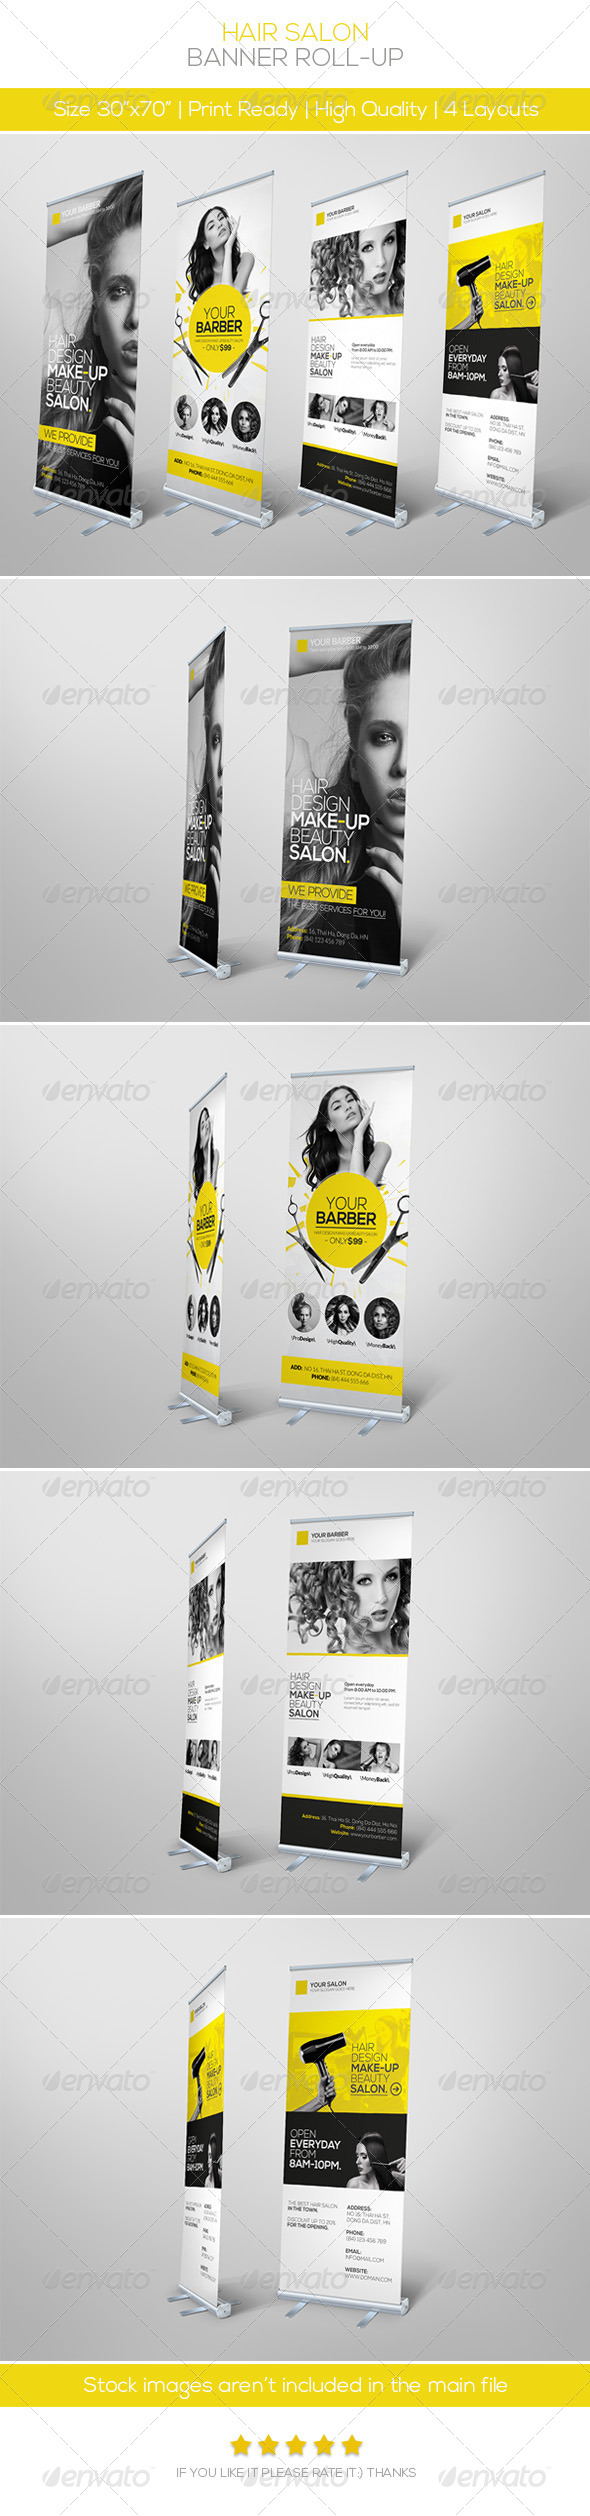 GraphicRiver Premium Hair Salon Roll-up Banner 5815930